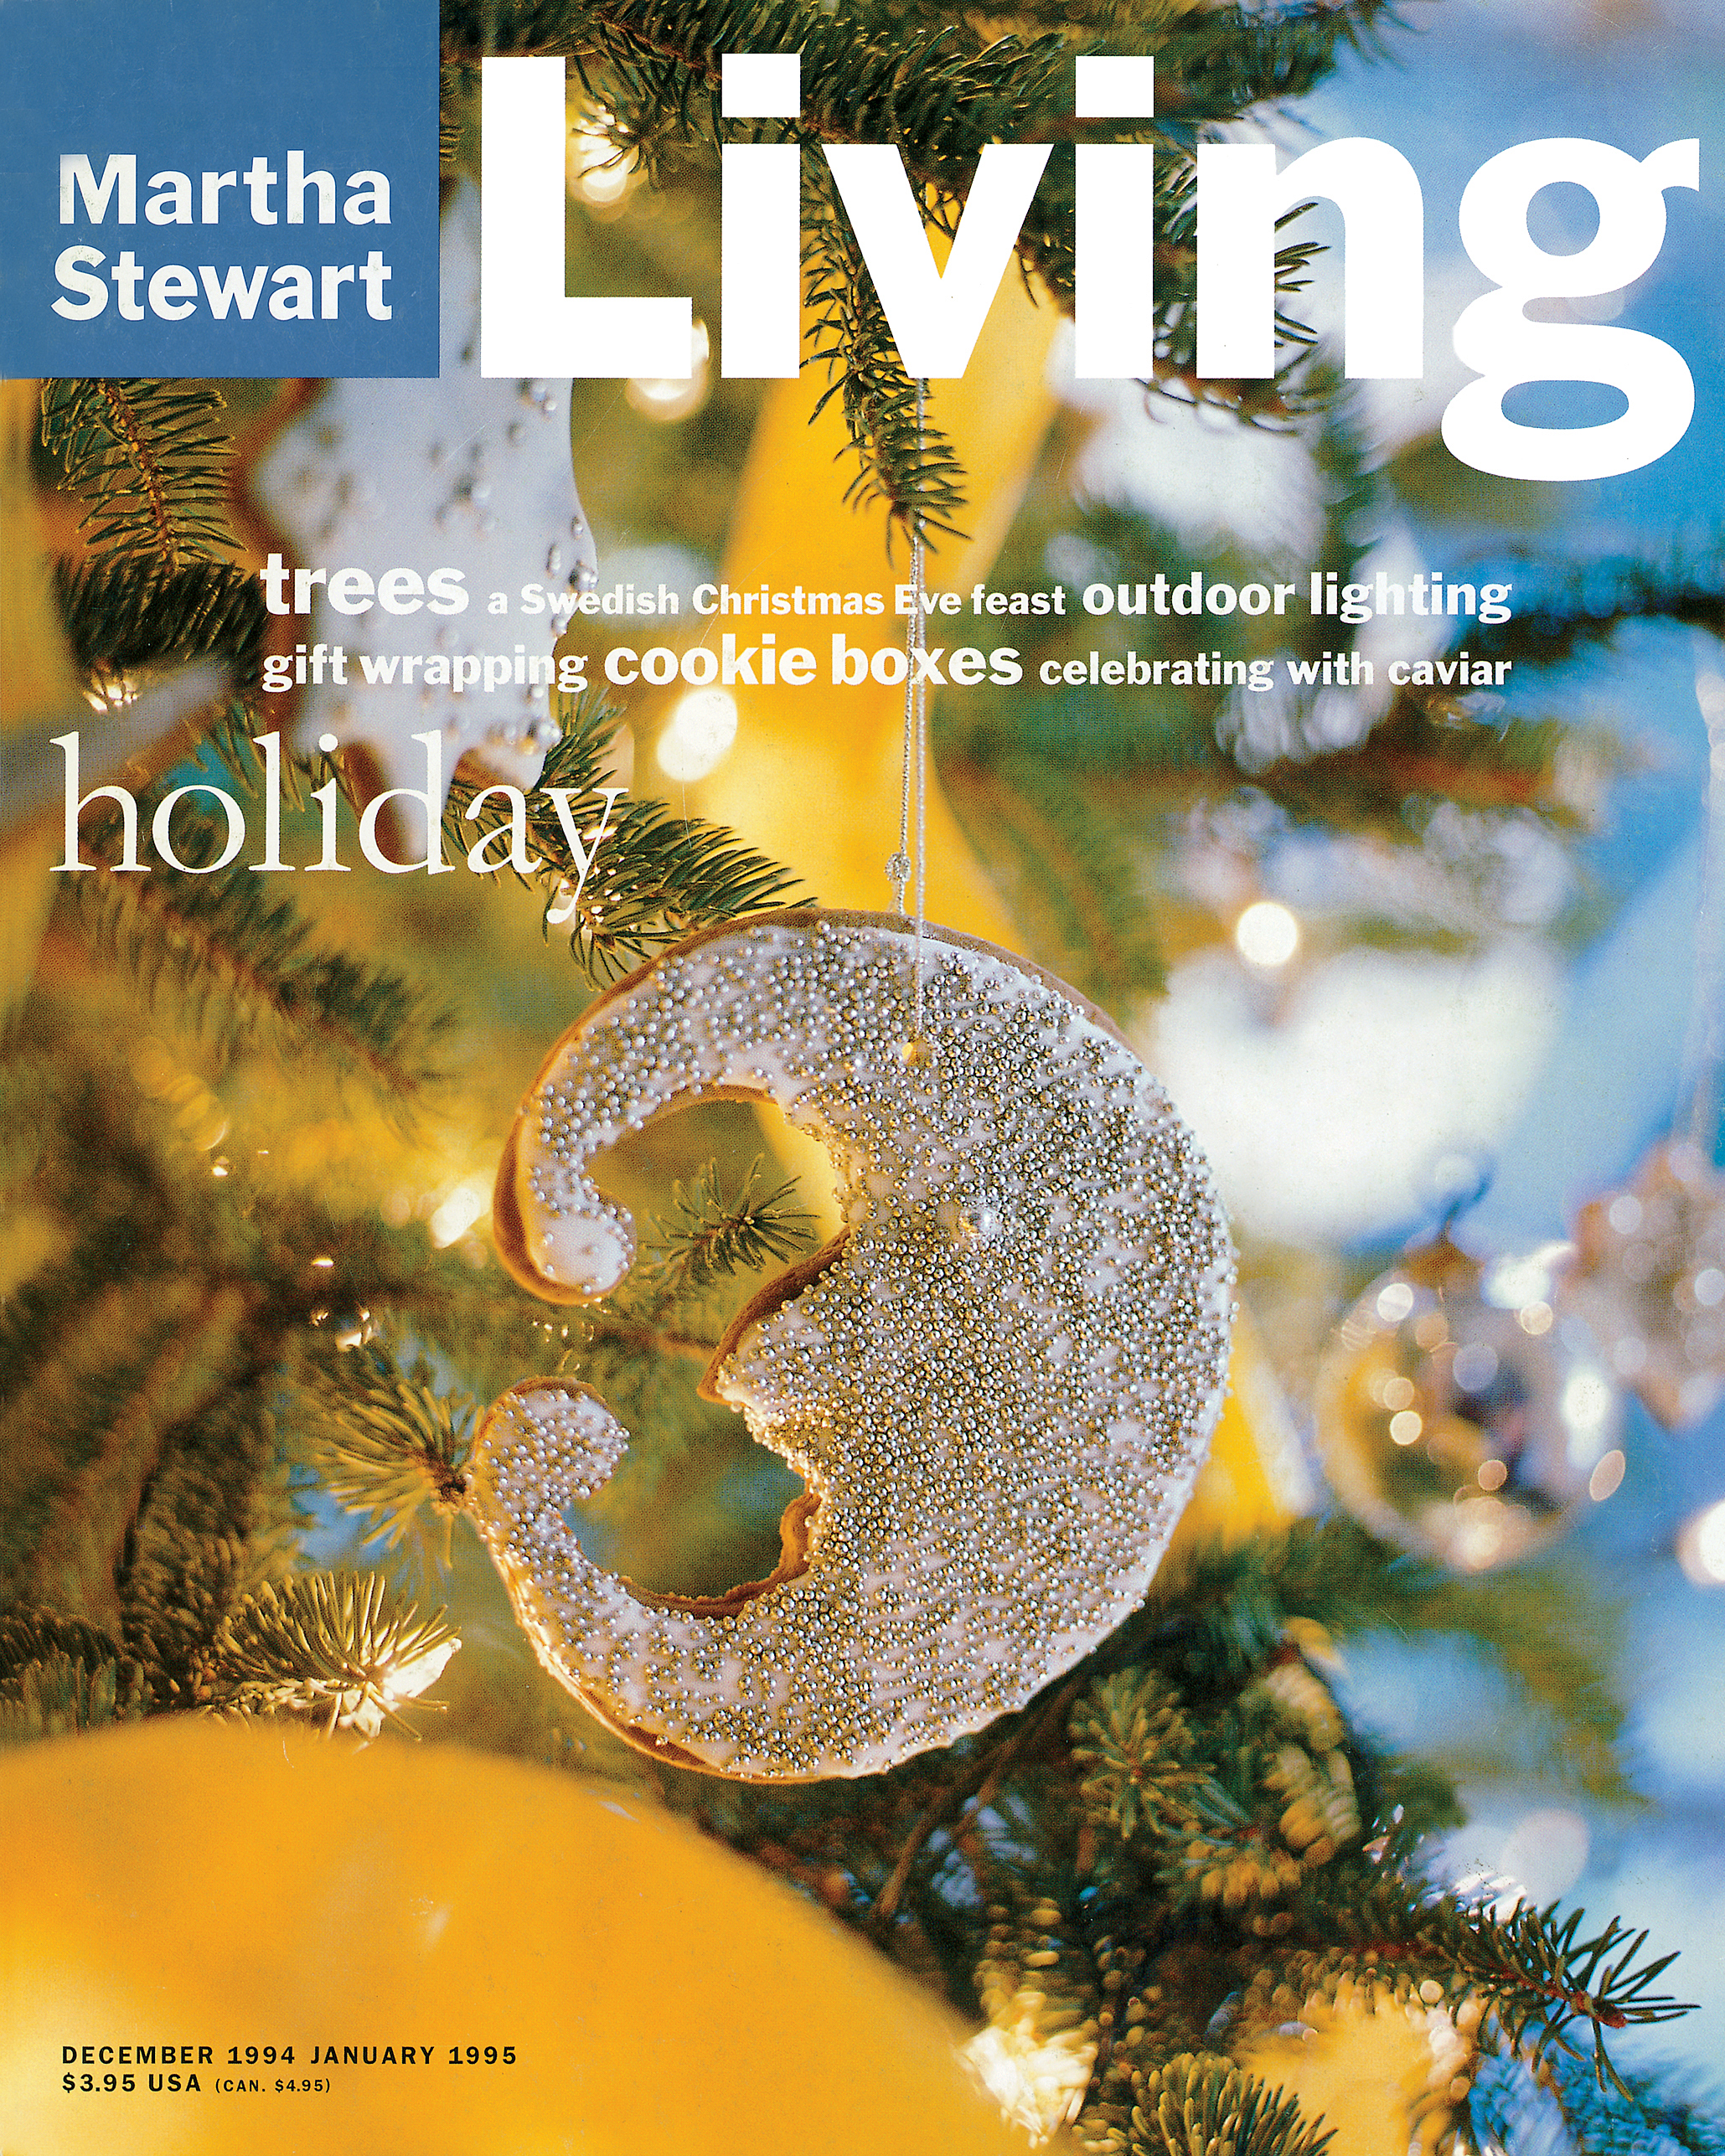 msl-cover-holiday-1994.jpg